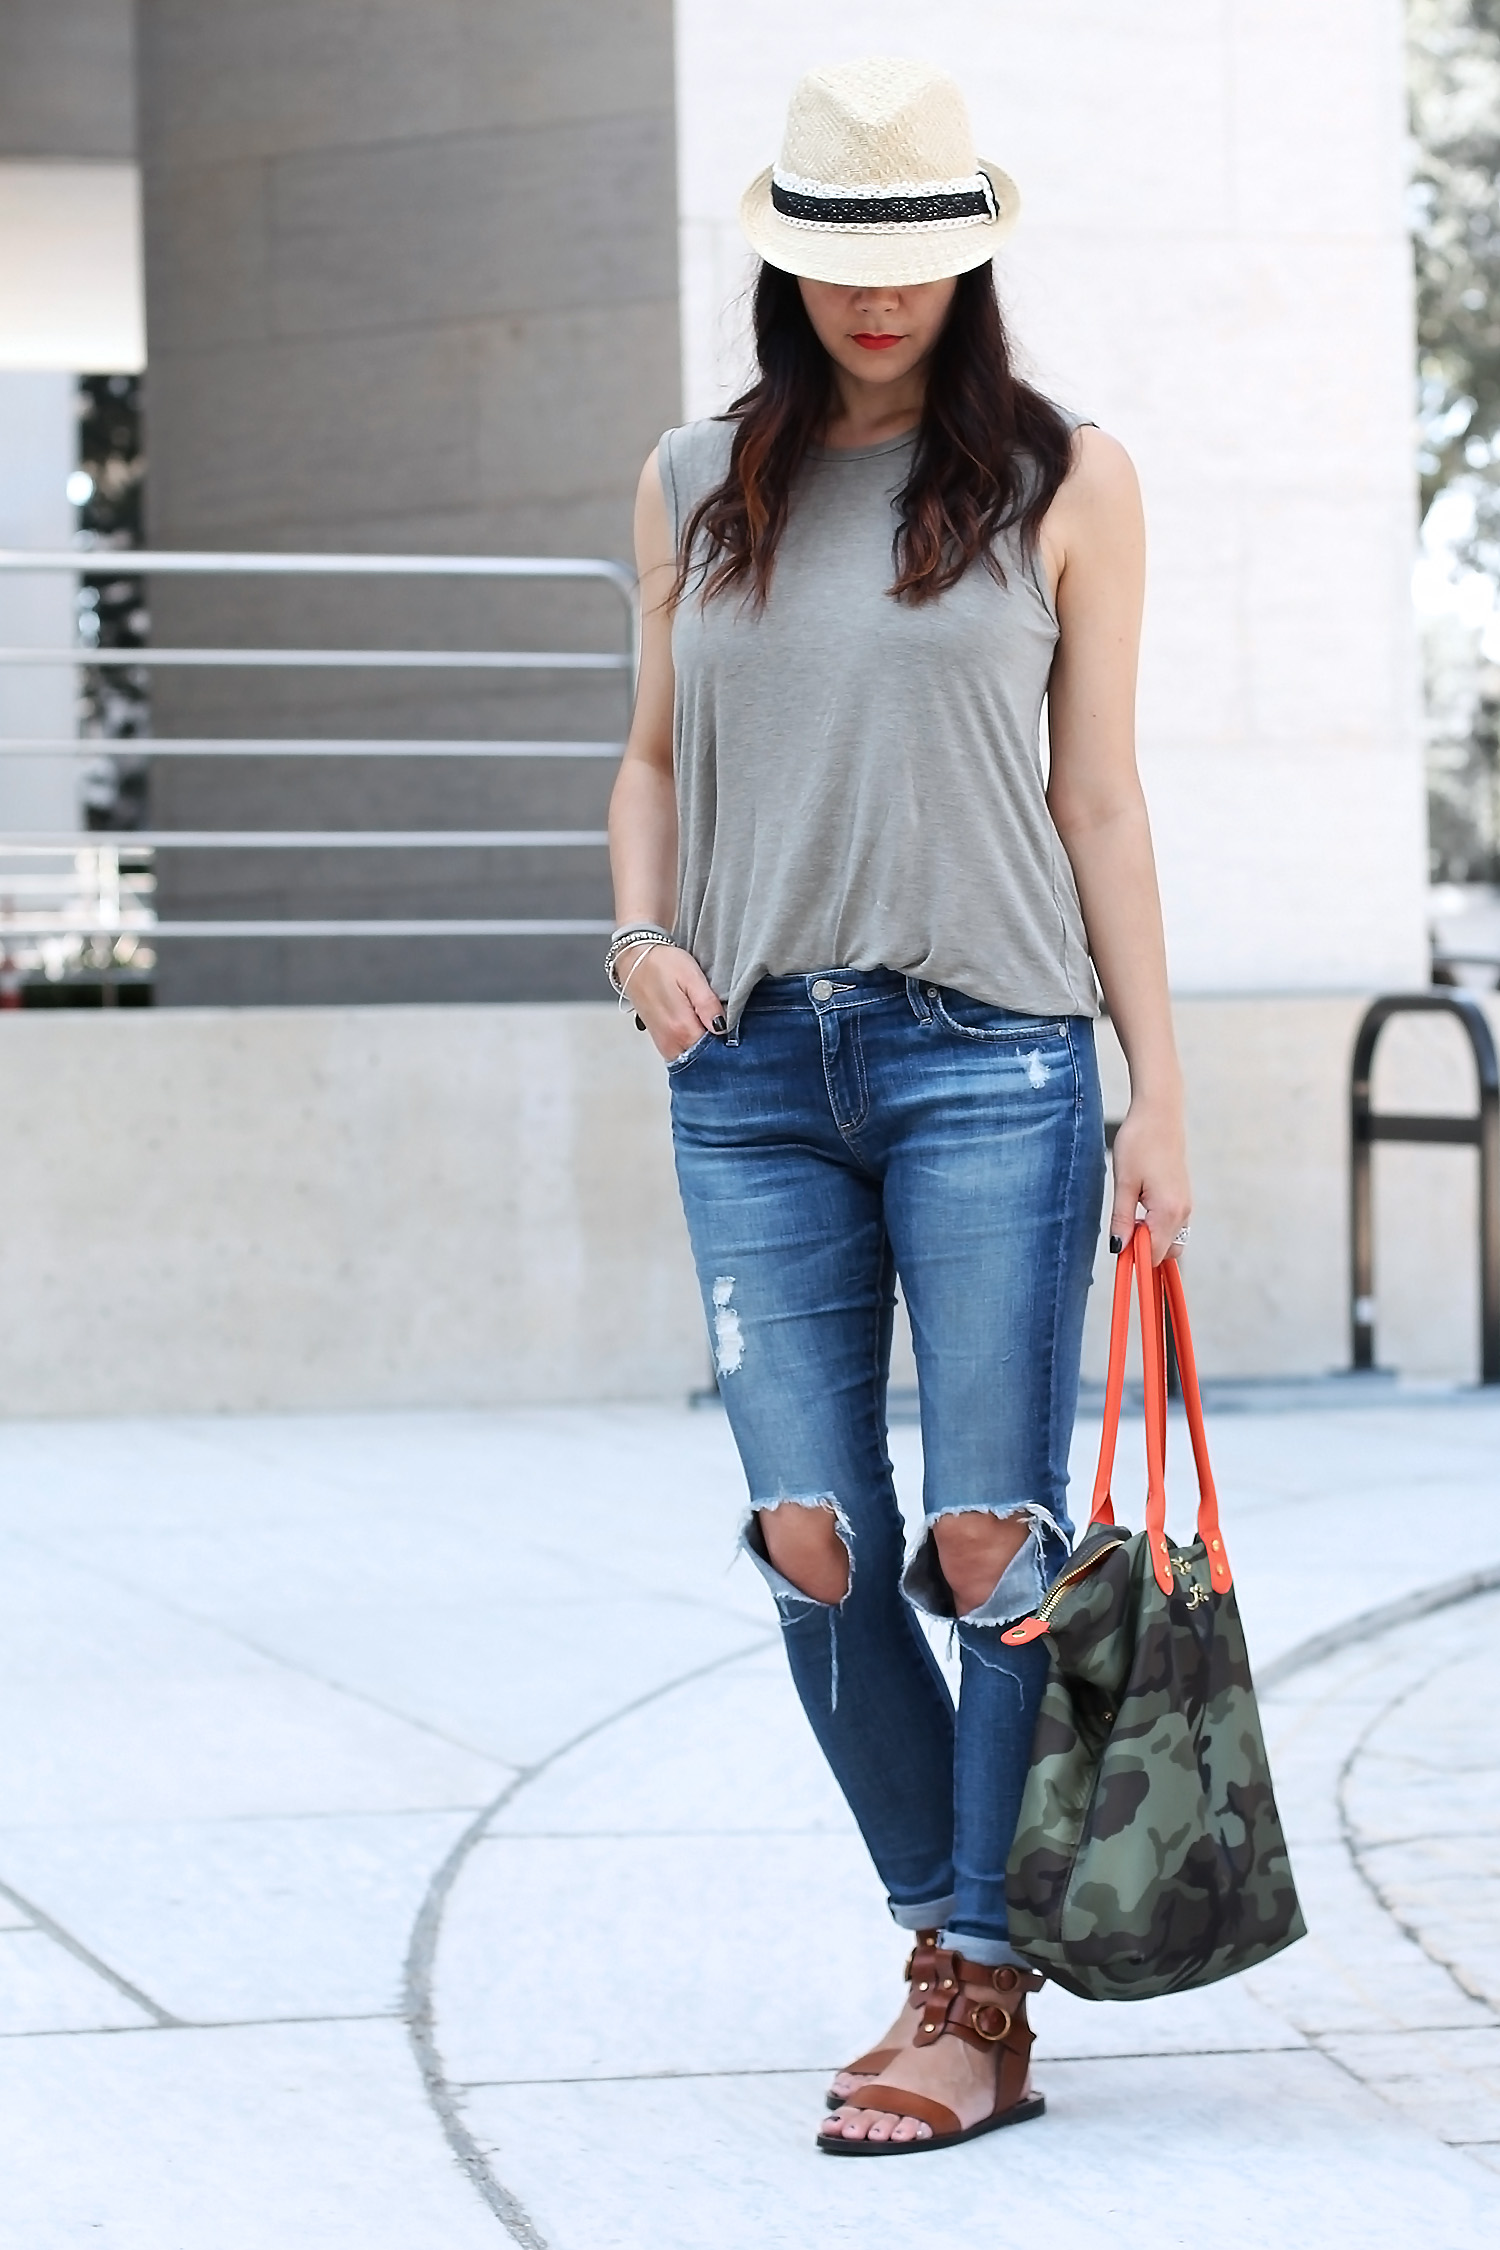 AG Jeans Distressed, Summer Weekend Look